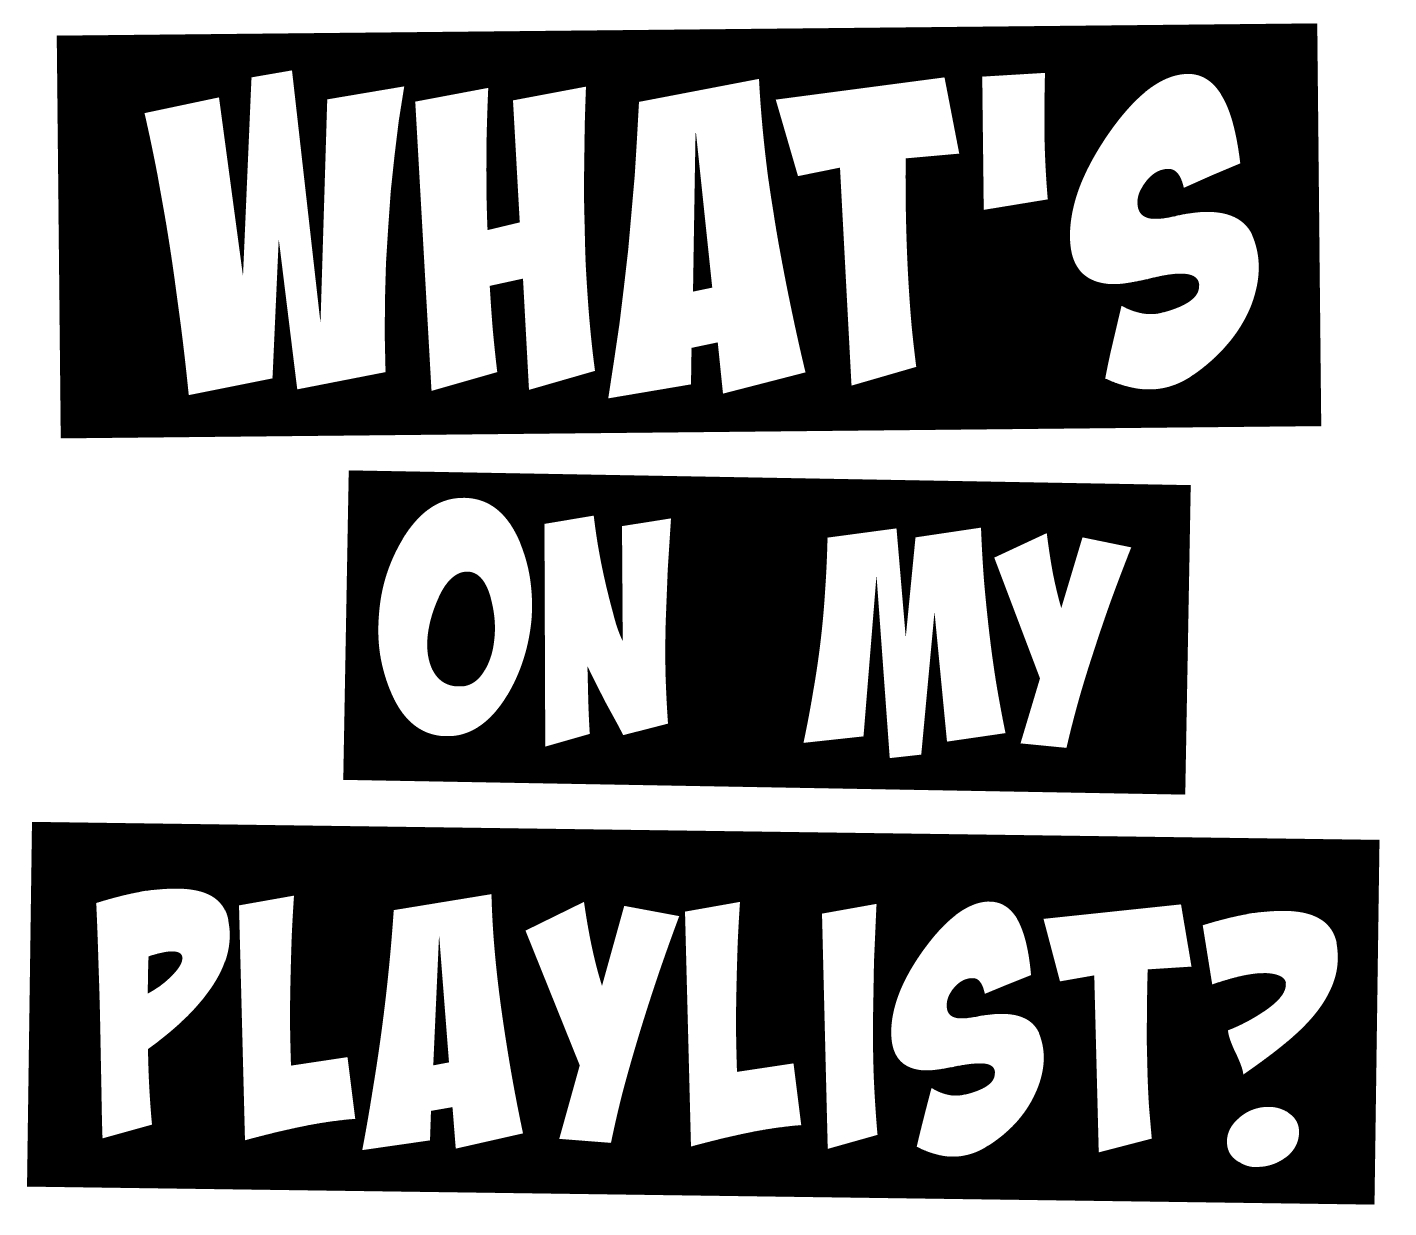 This Week On Oye's Playlist